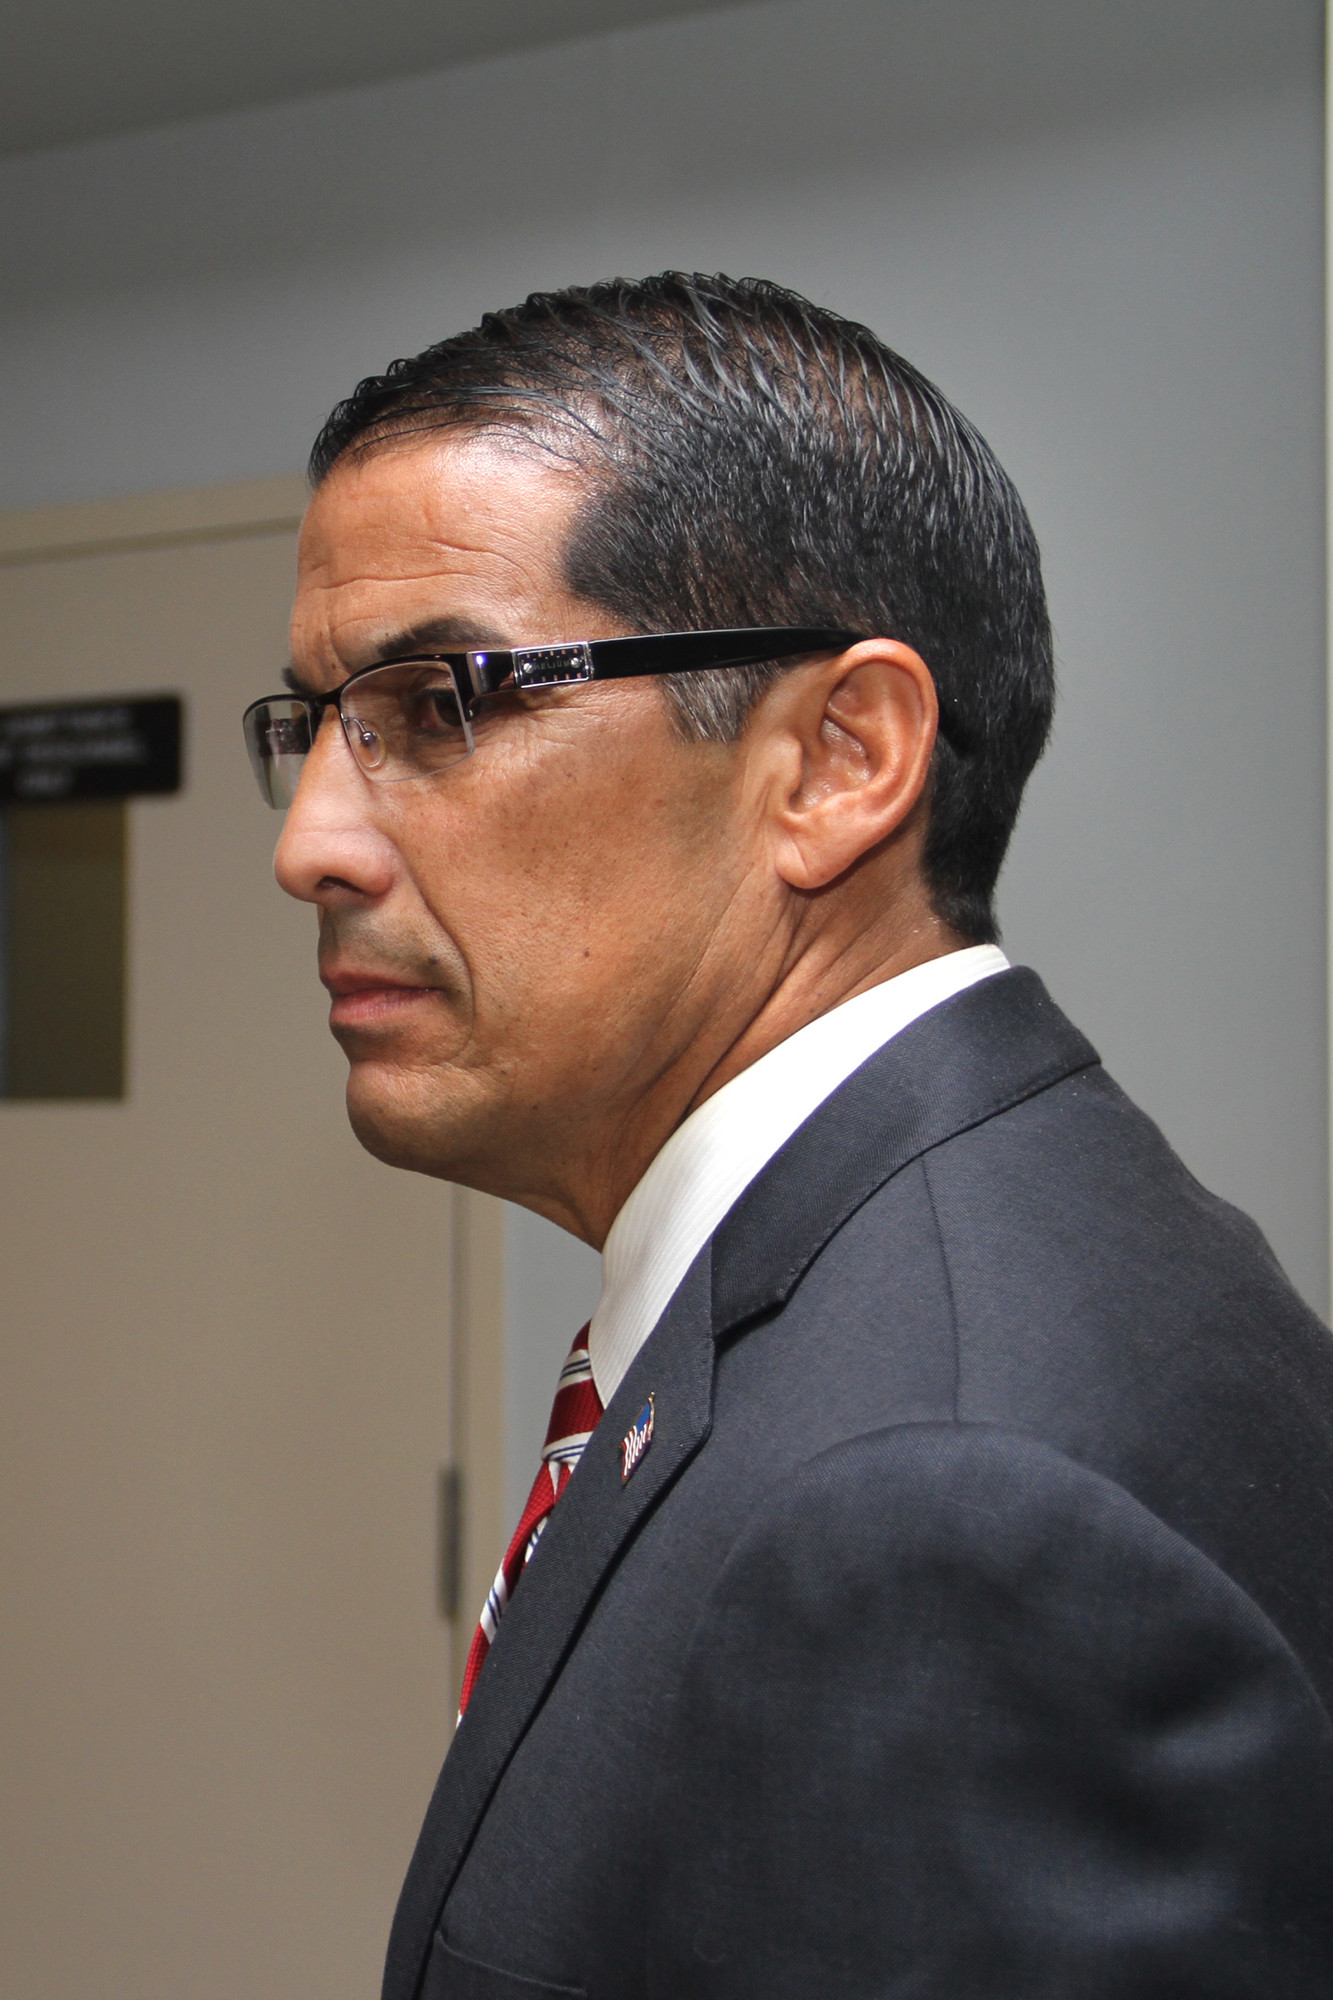 Mark Bonilla, the town clerk, was asked to vacate his office because he was convicted of a crime that involved a violation of his oath of office on July 25, officials said.